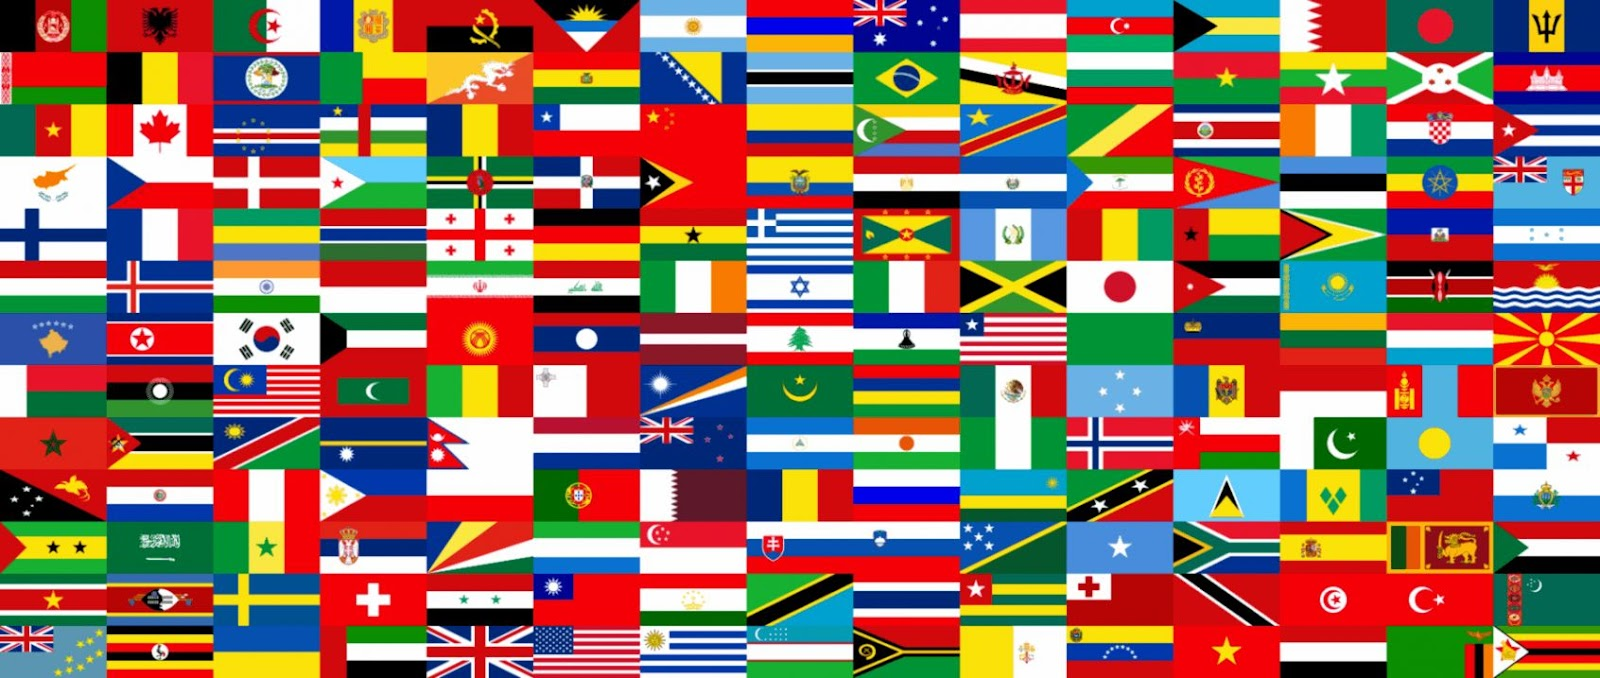 Flags Of The World Full Hd Wallpaper Opera Wallpapers